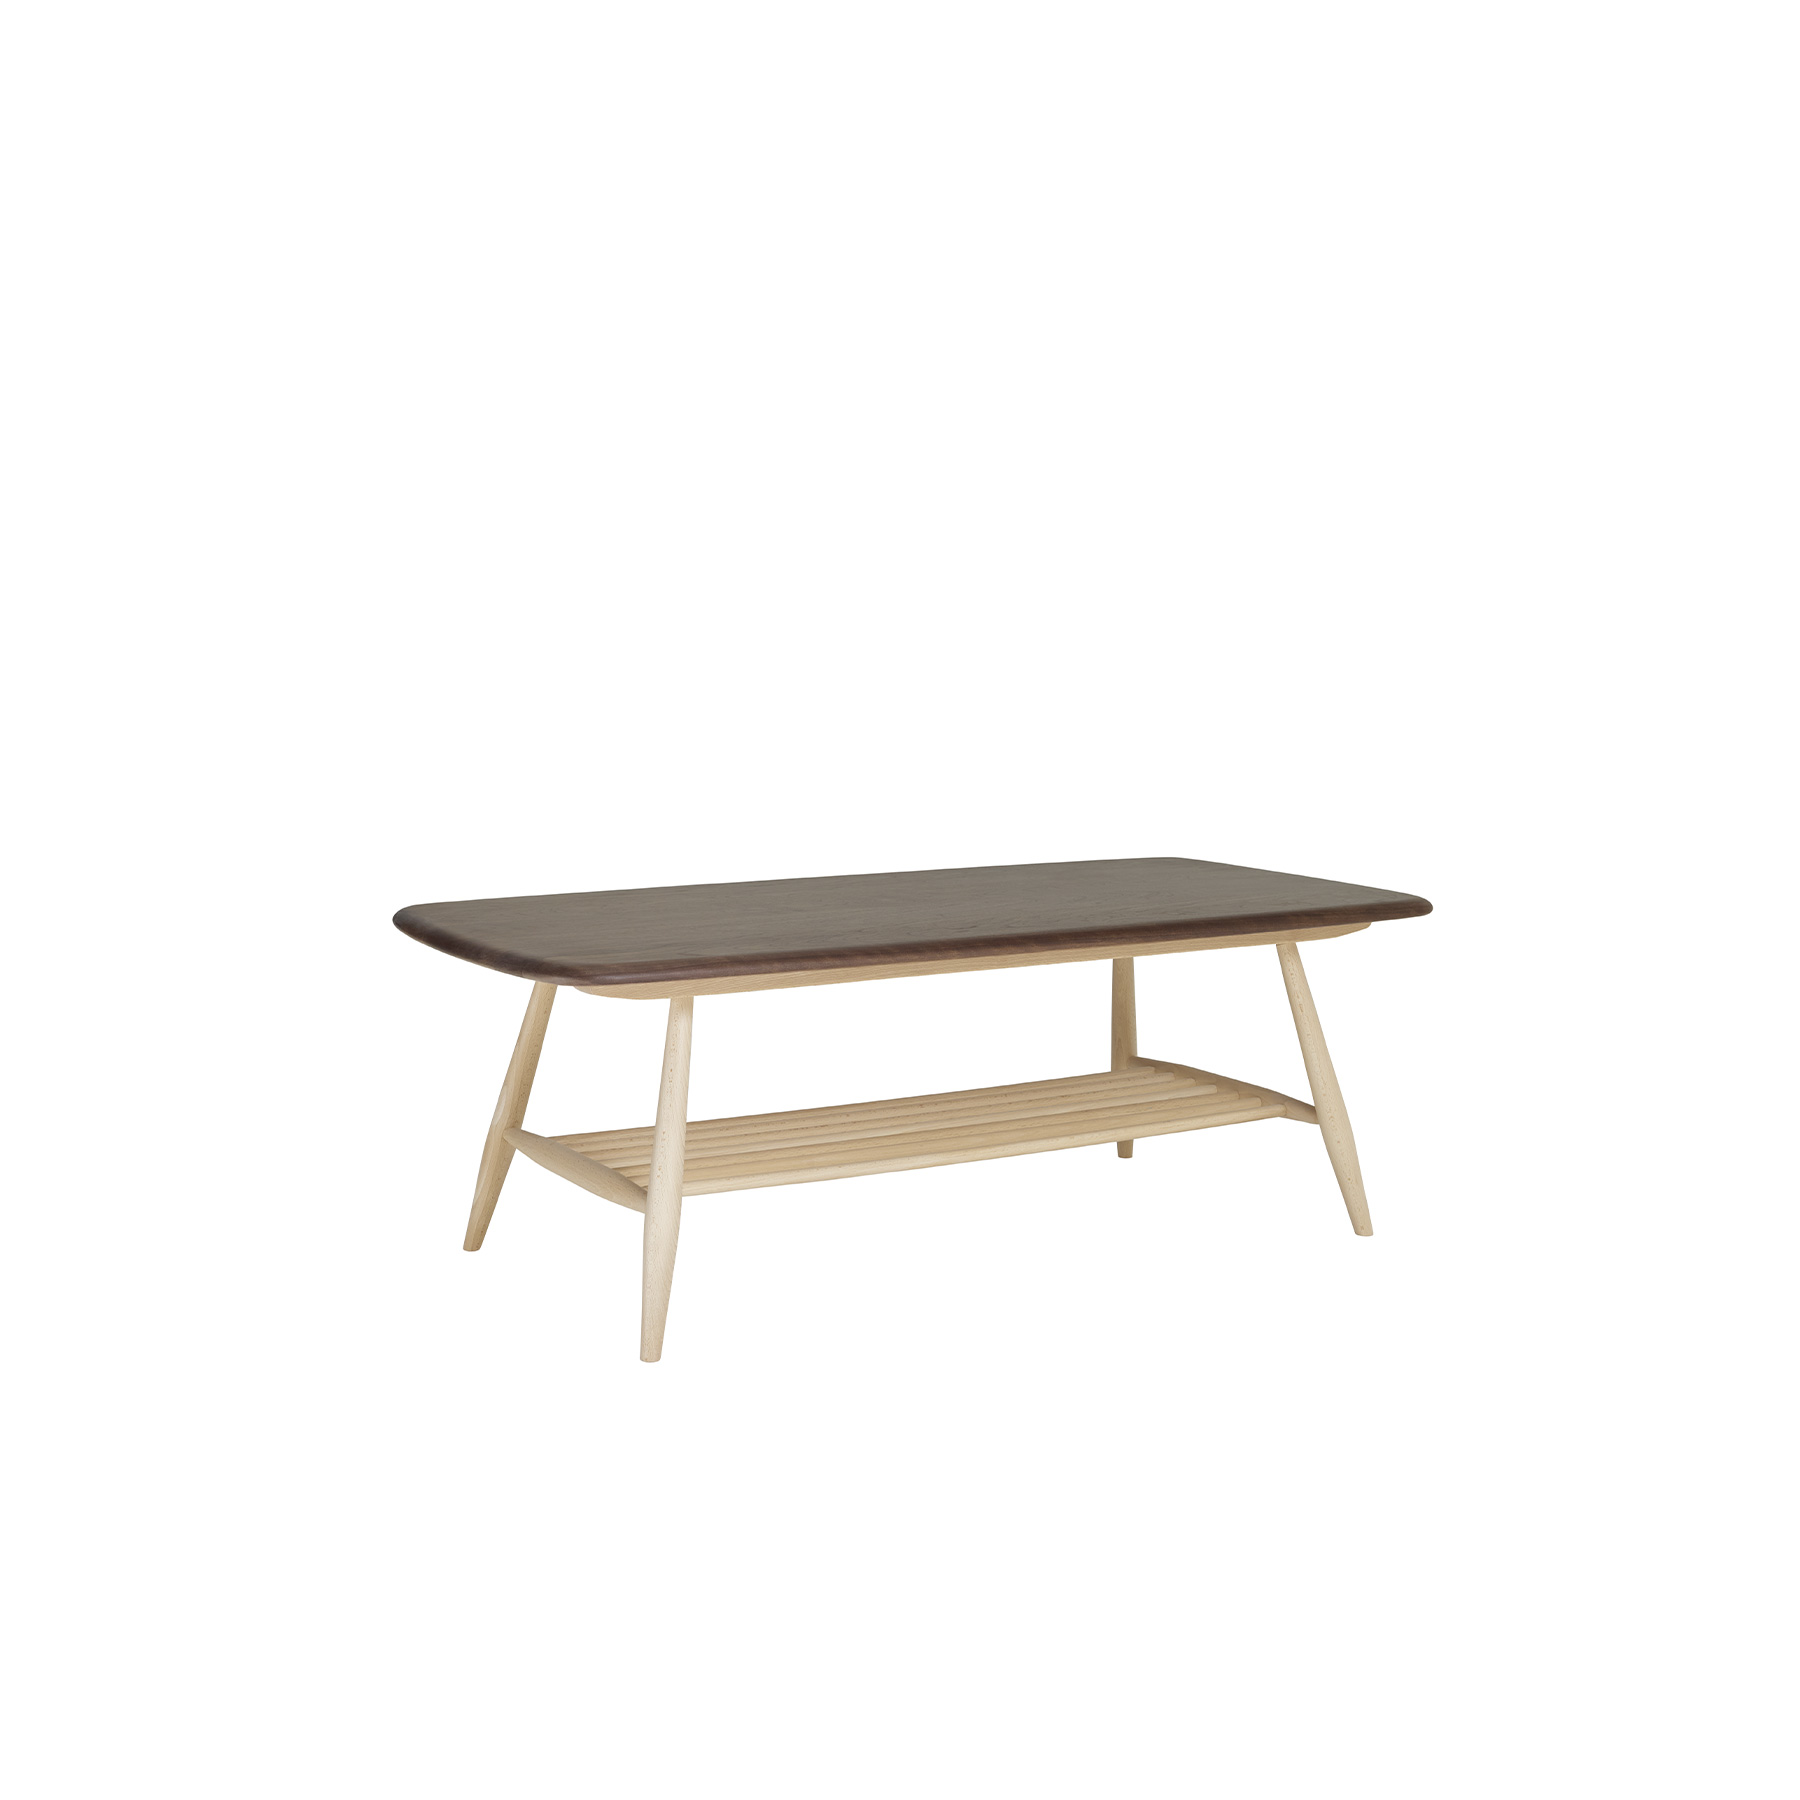 Originals Coffee Table - <p>The Ercol Originals are pieces of timeless and classic design that never date or show their age. It is furniture that is as relevant and as functional now as it was when it was created in the 1950s and 1960s. This furniture was designed by Ercol's founder, Lucian Ercolani, who drew for his inspiration on the time-proven local design and craft in the Chiltern Hills around where he lived and built his first factory in 1920 in High Wycombe. Using the strength of beech and the beauty of elm he carried this definition on into a huge variety of dining, kitchen, and school chairs and then extended the idiom into the low easy chair range epitomised by the 206 armchair and the studio couch. The beauty of the colour and the grain of the elm took Lucian on to use elm for the tables and cabinets of the Originals and the following Windsor range. This coffee table mirror features prominently within the Windsor range.  Individually shaped spindles construct the lower shelf which gives the table a two-tiered appearance as well providing a handy storage area for books and magazines. Tapered legs and fluid rounded edges on the ash table top give this piece an organic feel. This table will be finished in your choice from a range of lacquer finishes that both protects the timber, whilst enabling you to choose the look to match your style and décor. This table goes particularly well with the 206 Windsor armchair or with the Evergreen sofa and armchair.</p>    Matter of Stuff